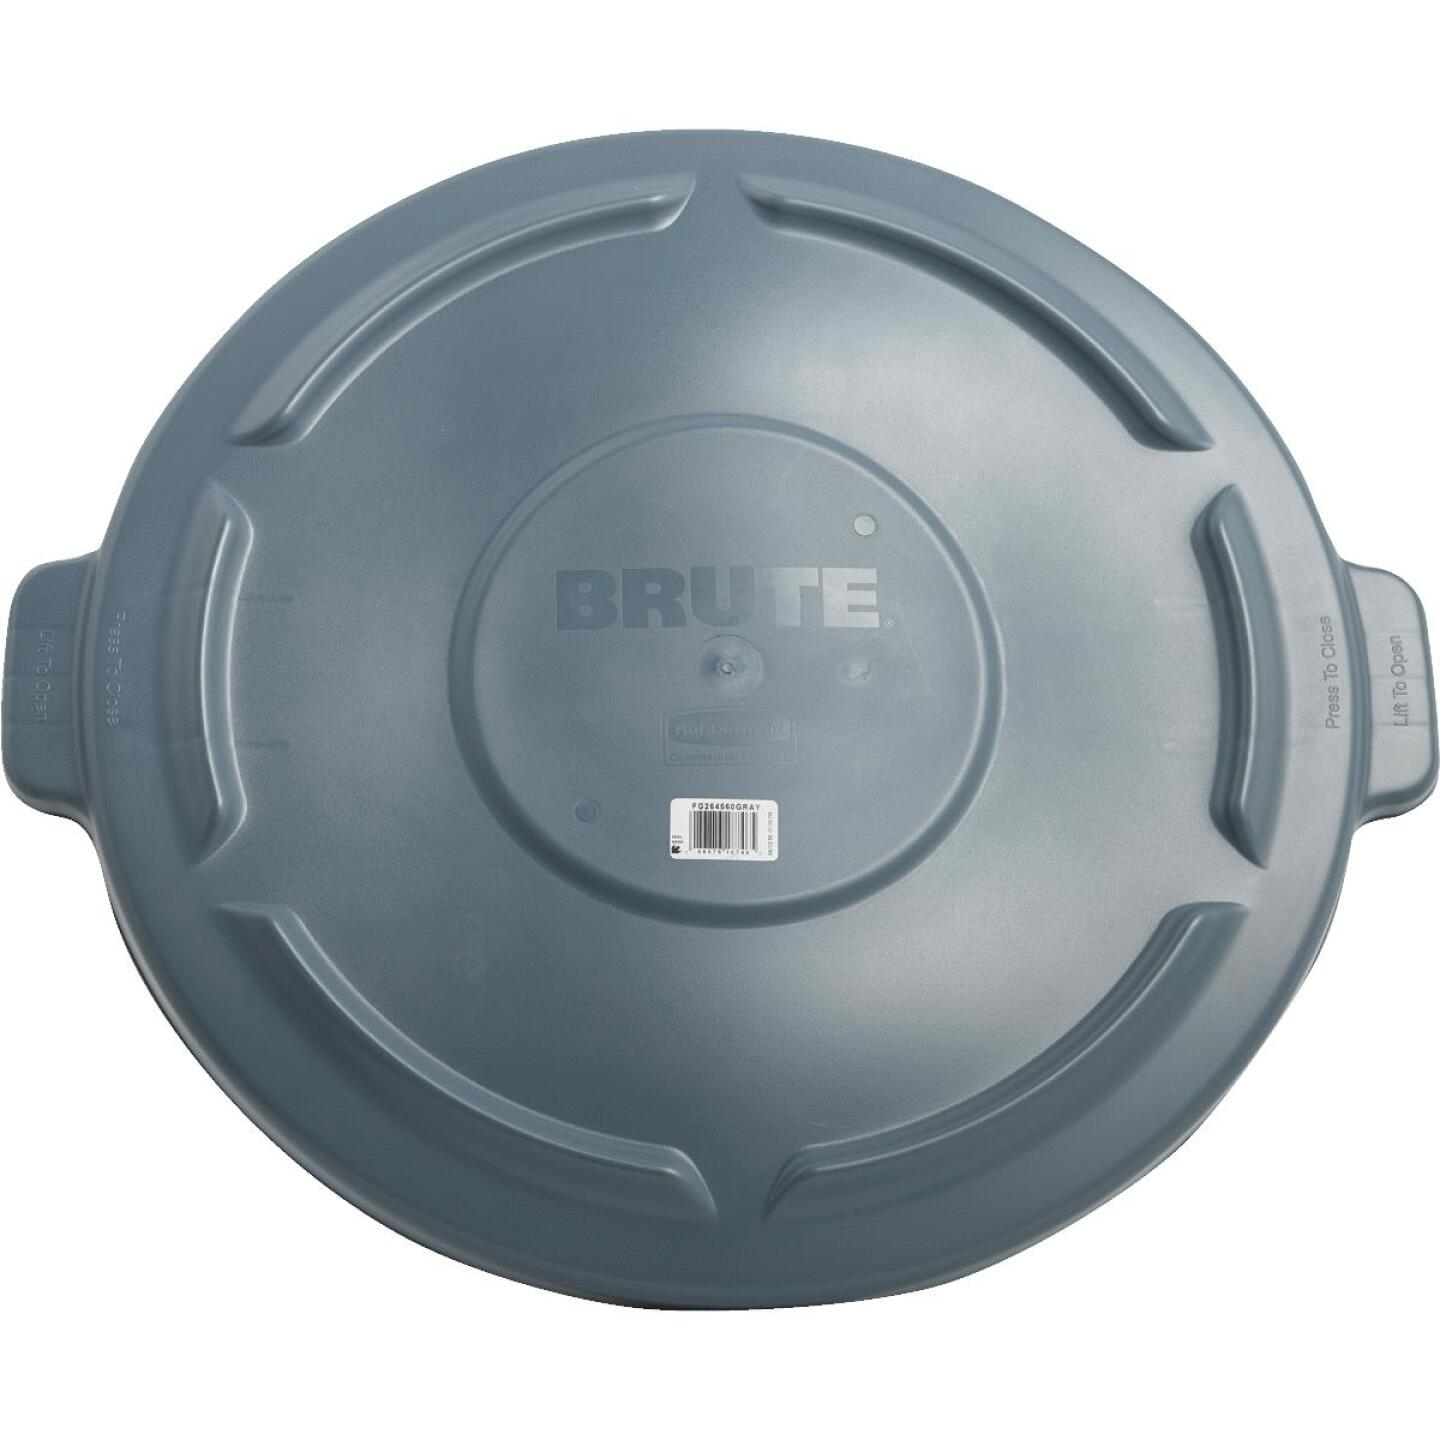 Rubbermaid Commercial Brute Gray Trash Can Lid for 44 Gal. Trash Can Image 2